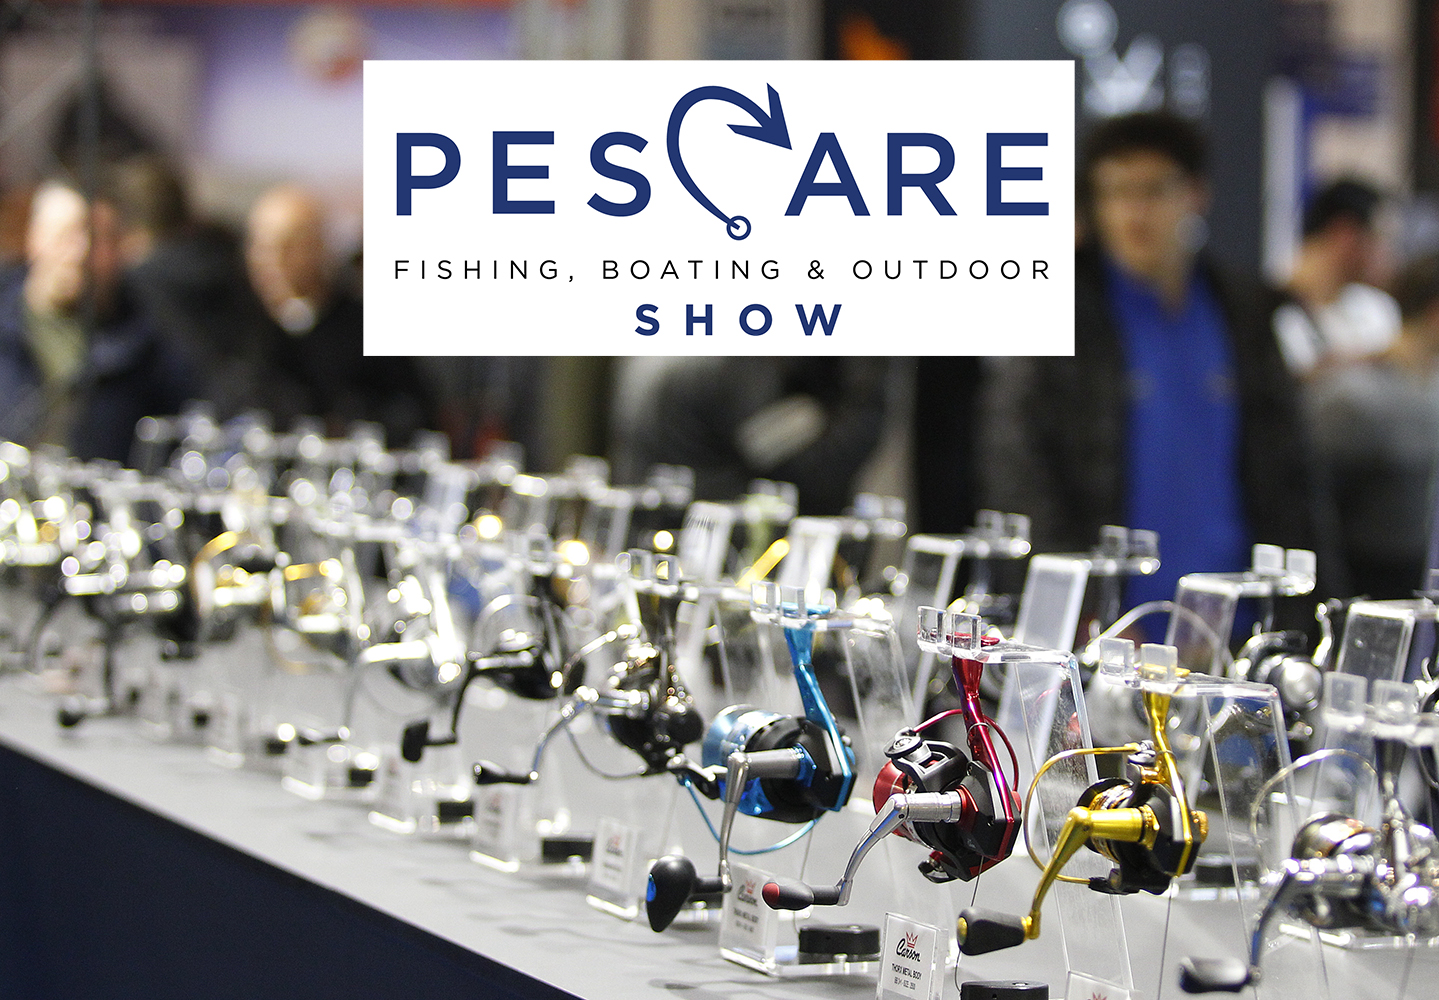 Pescare Show ospita Fishing Academy & Cuisine